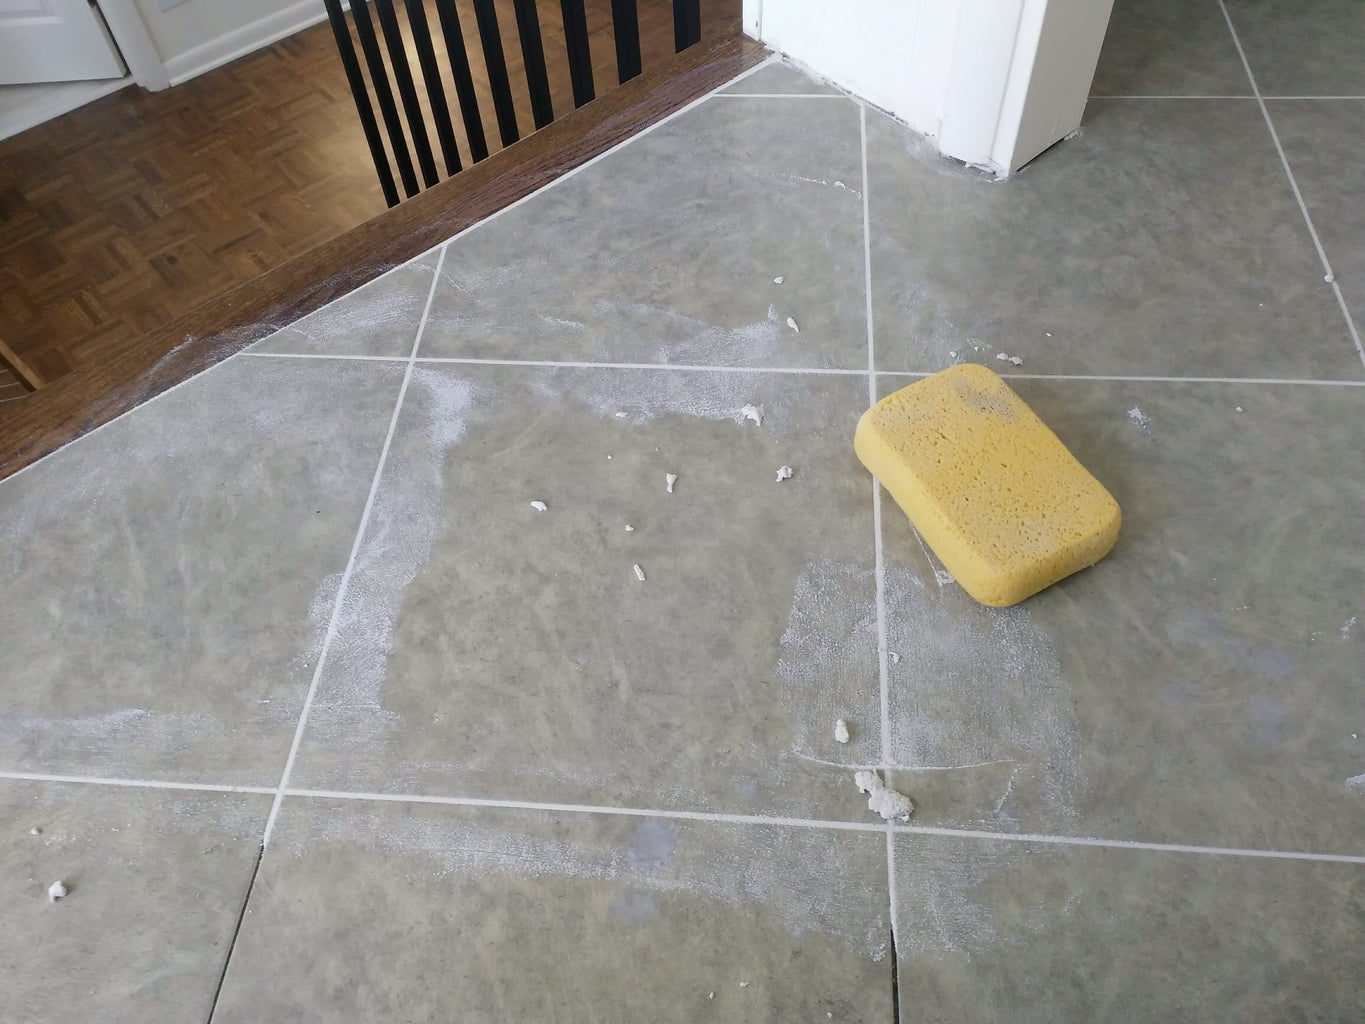 Grout the Lines